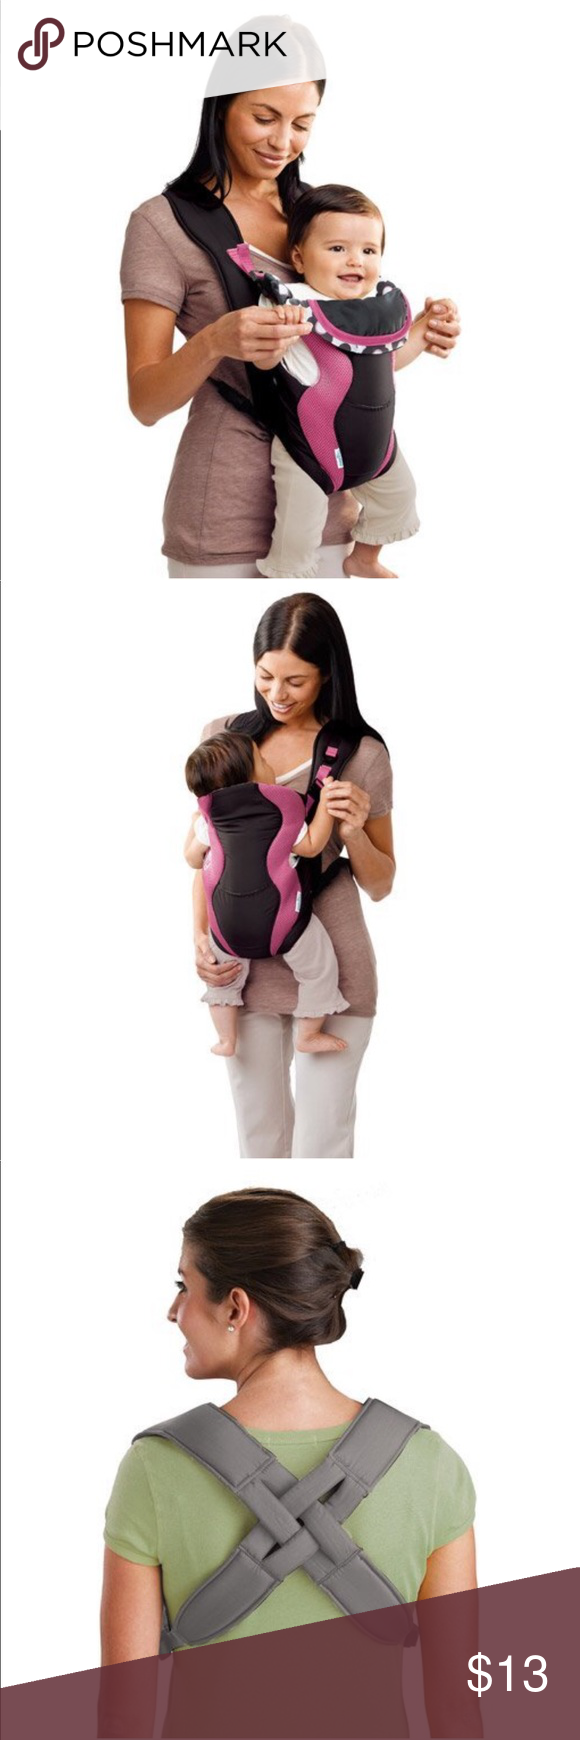 69dd55b728a The Evenflo Breathable Soft Infant Carrier The Evenflo the carrier offers  two carrying positions